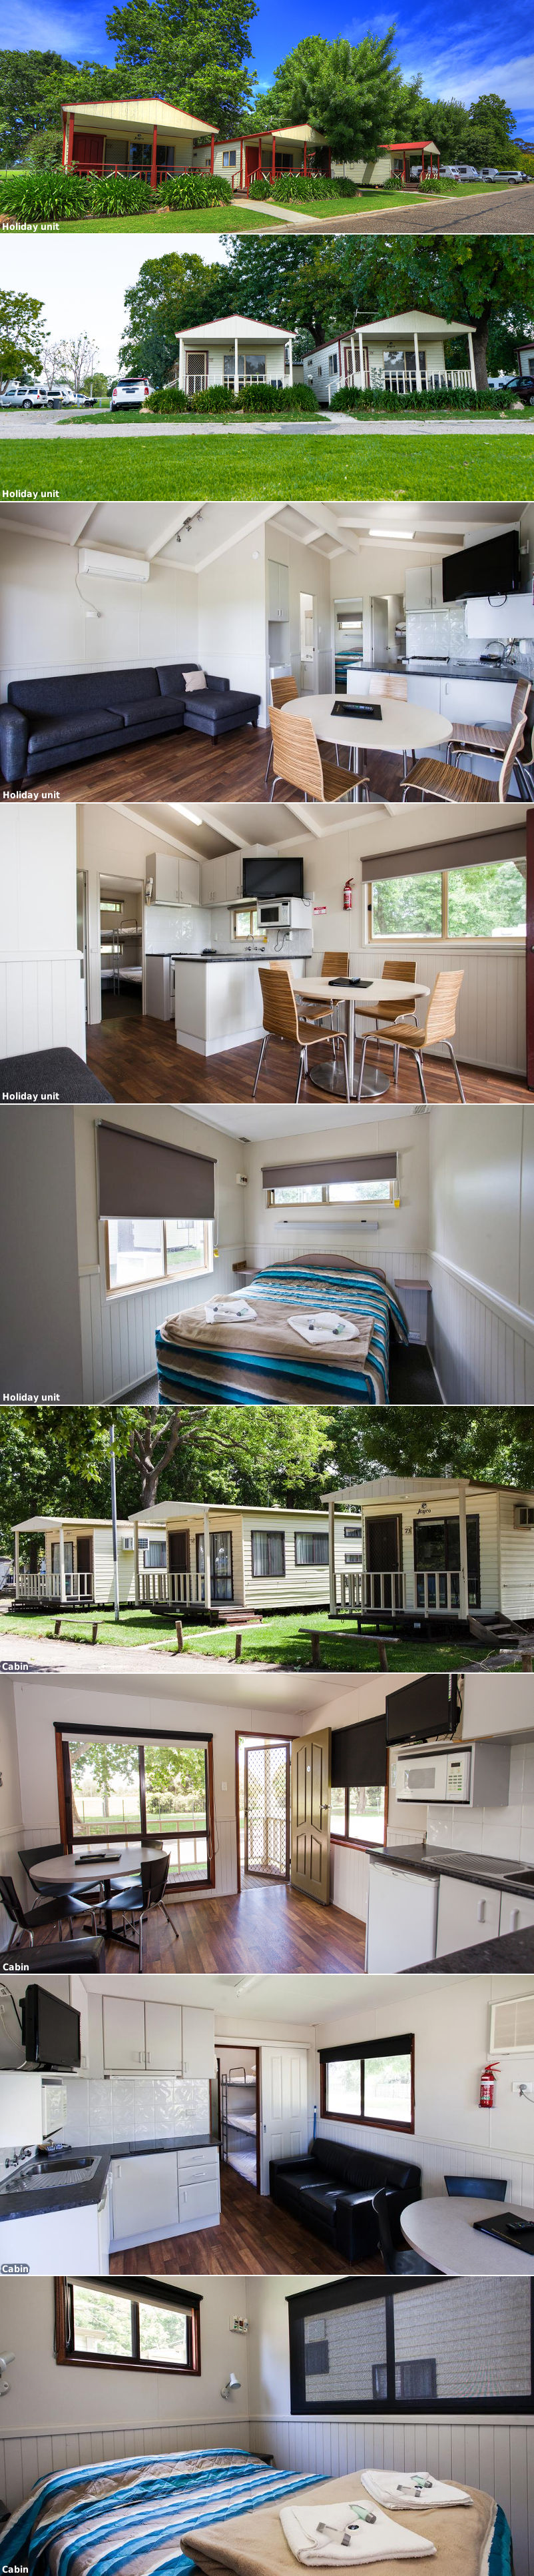 NRMA Bairnsdale Riverside Holiday Park - Holiday units and cabins